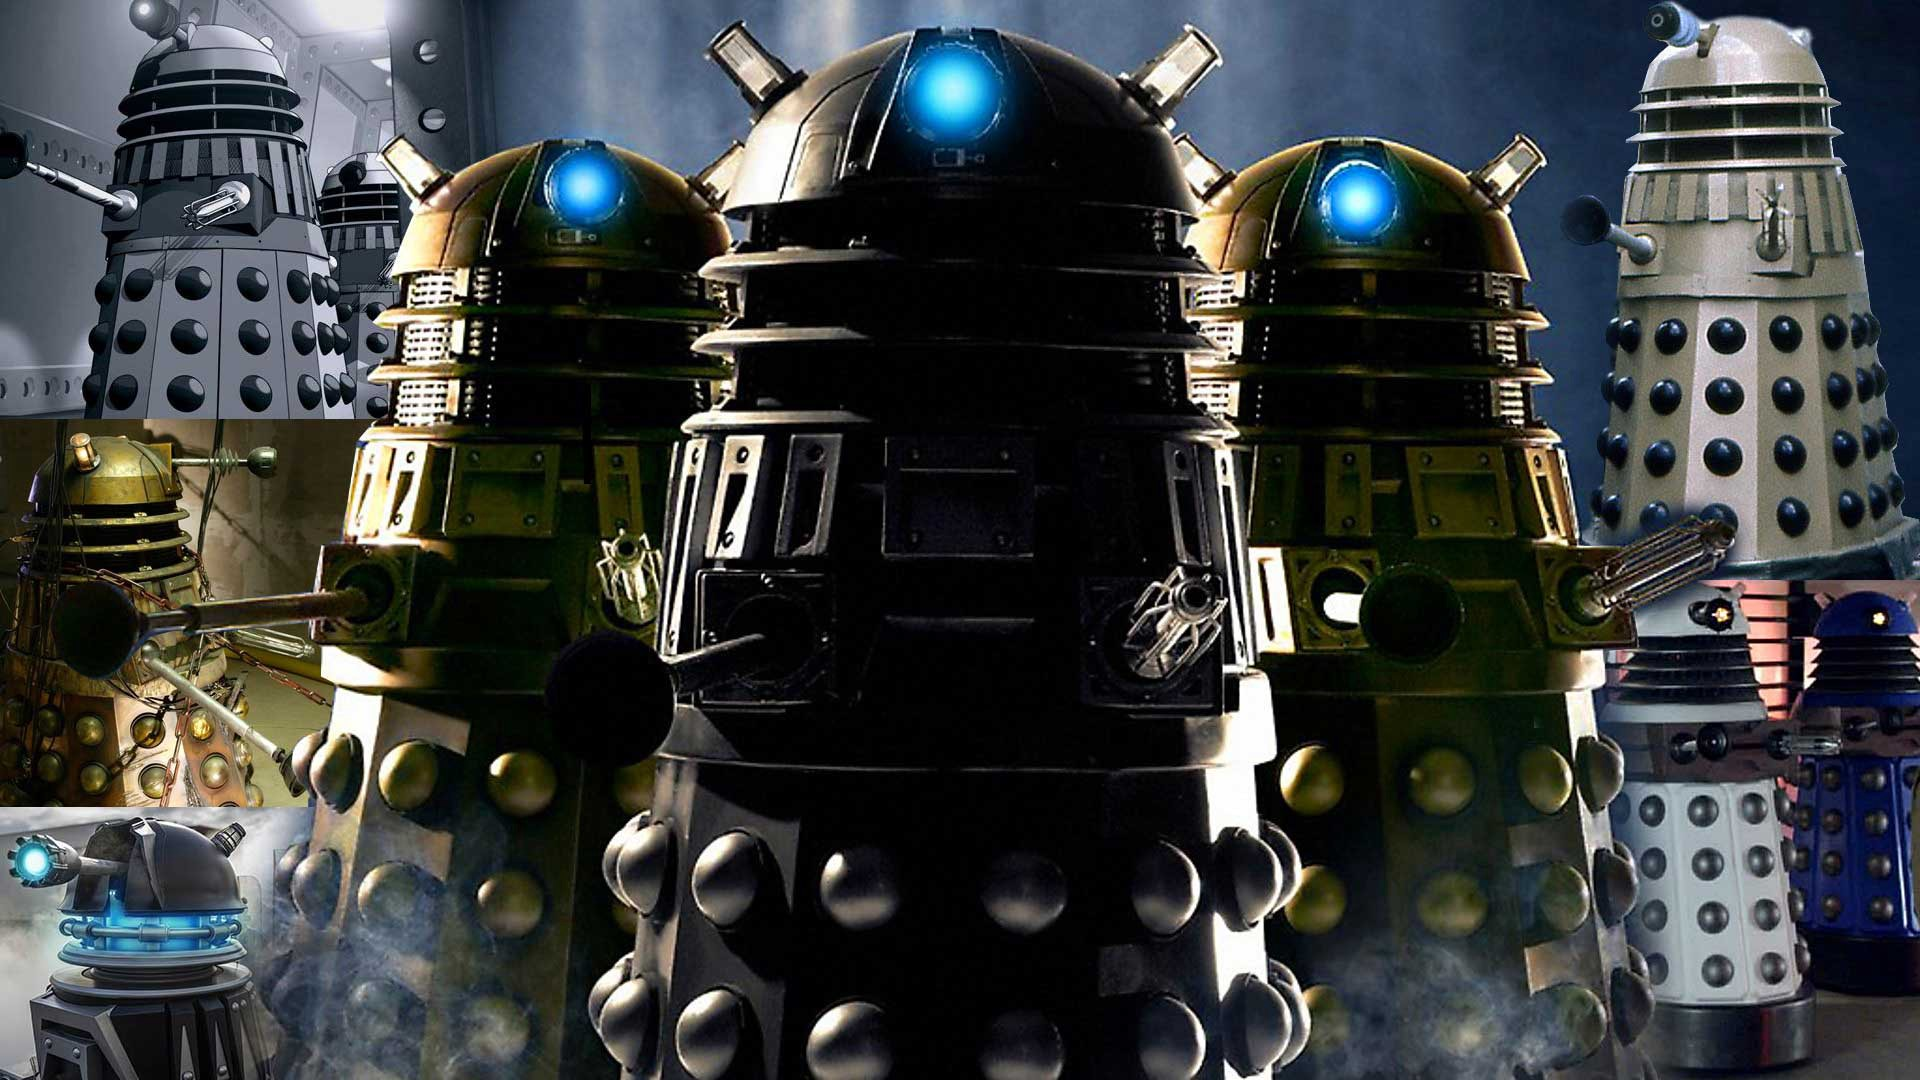 A group of dalek's from BBC's Doctor Who.